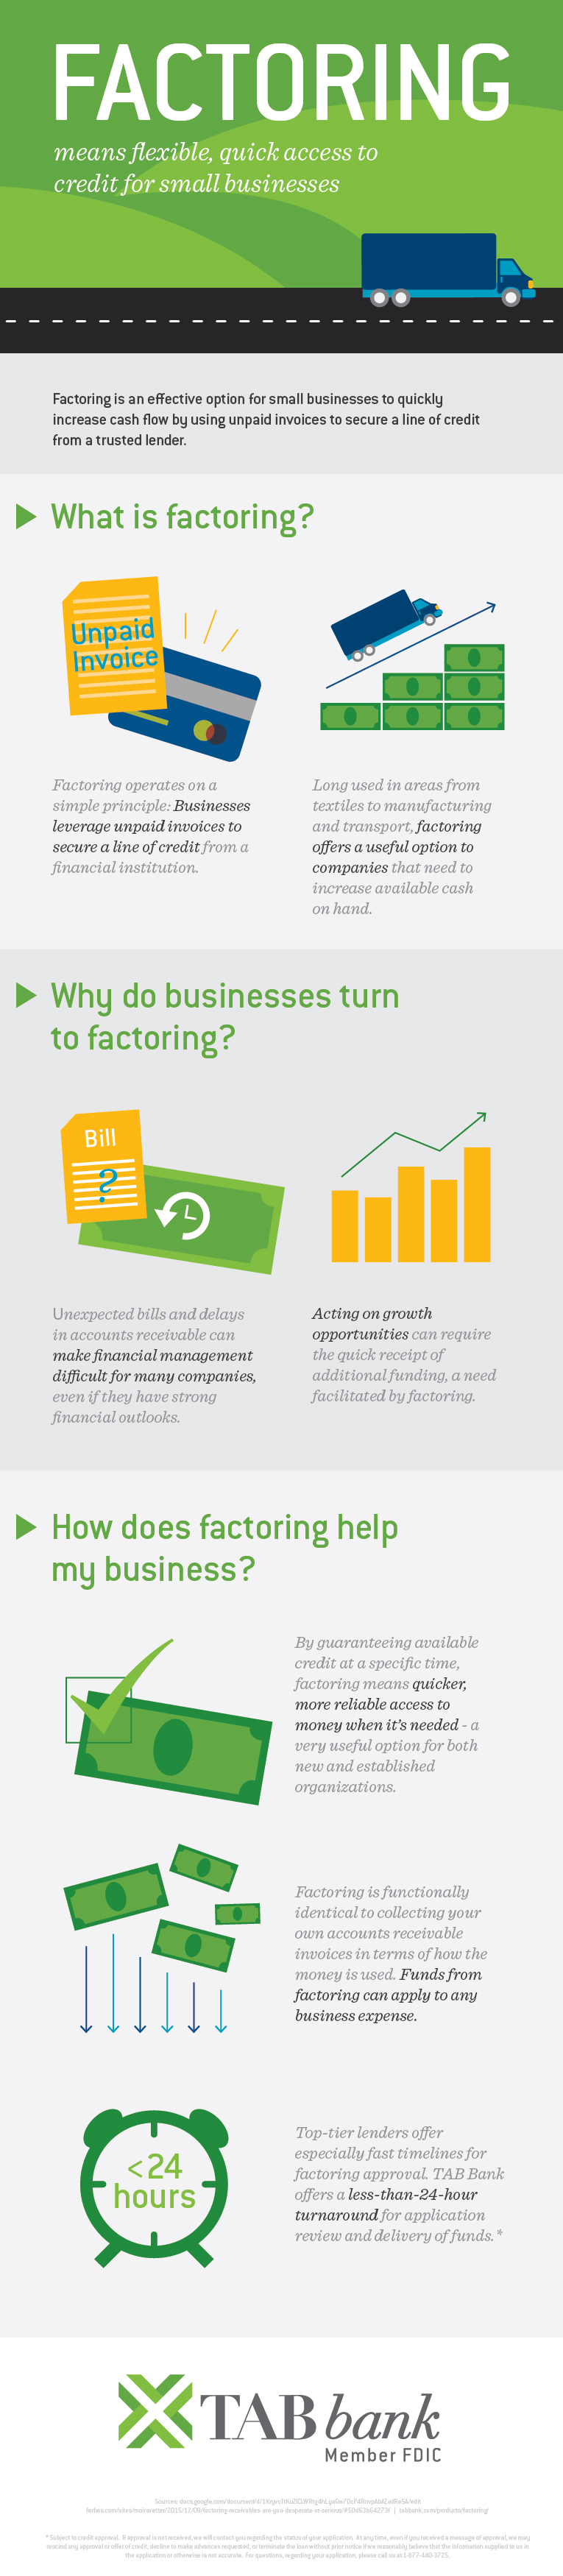 Factoring flexible quick access to credit for small businesses